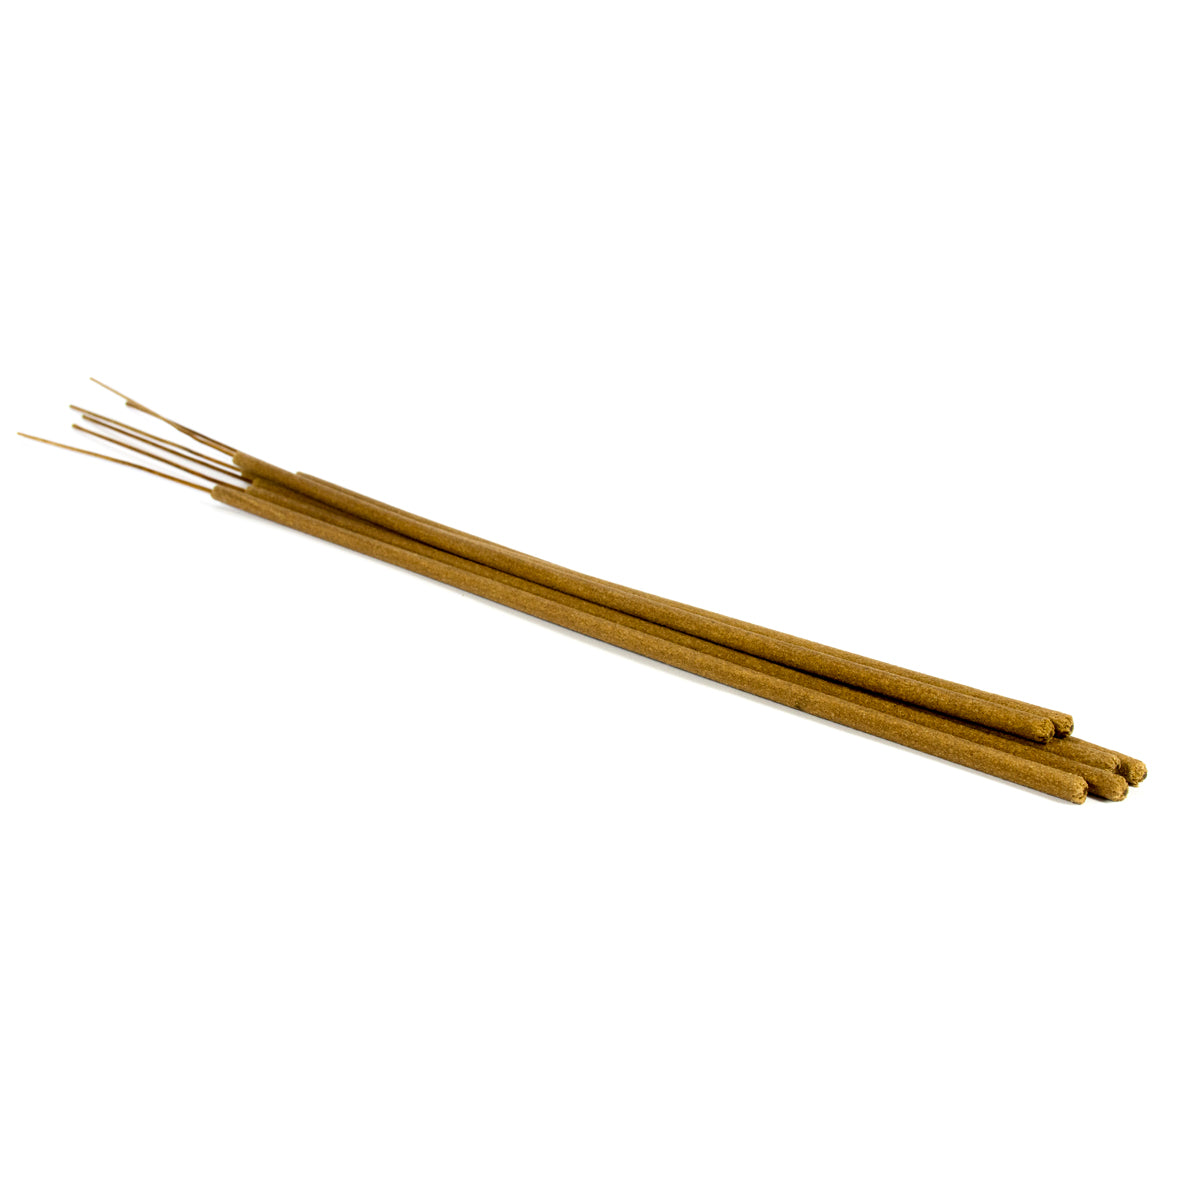 "Anna's Incense 19"" Jumbo Wands - 6 Pack"